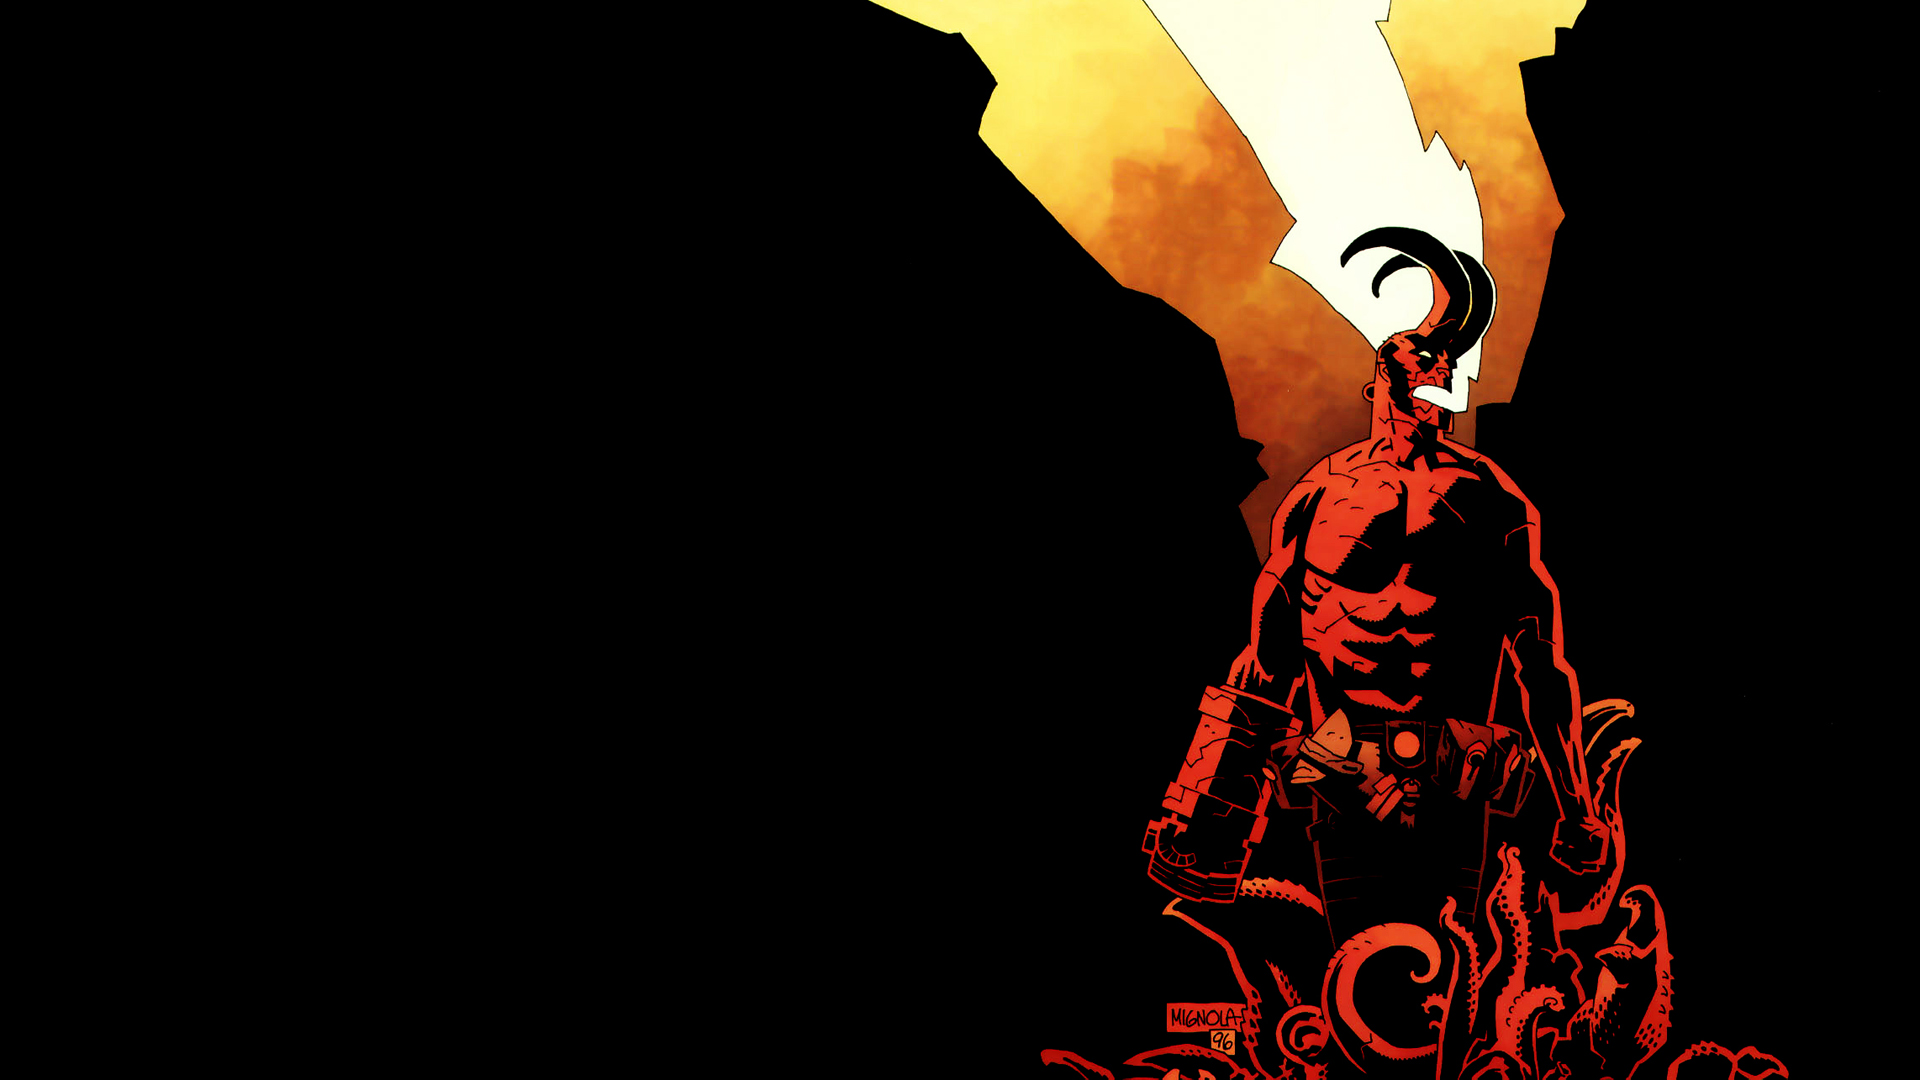 Hellboy  is a fictional superhero created by writer-artist Mike Mignola